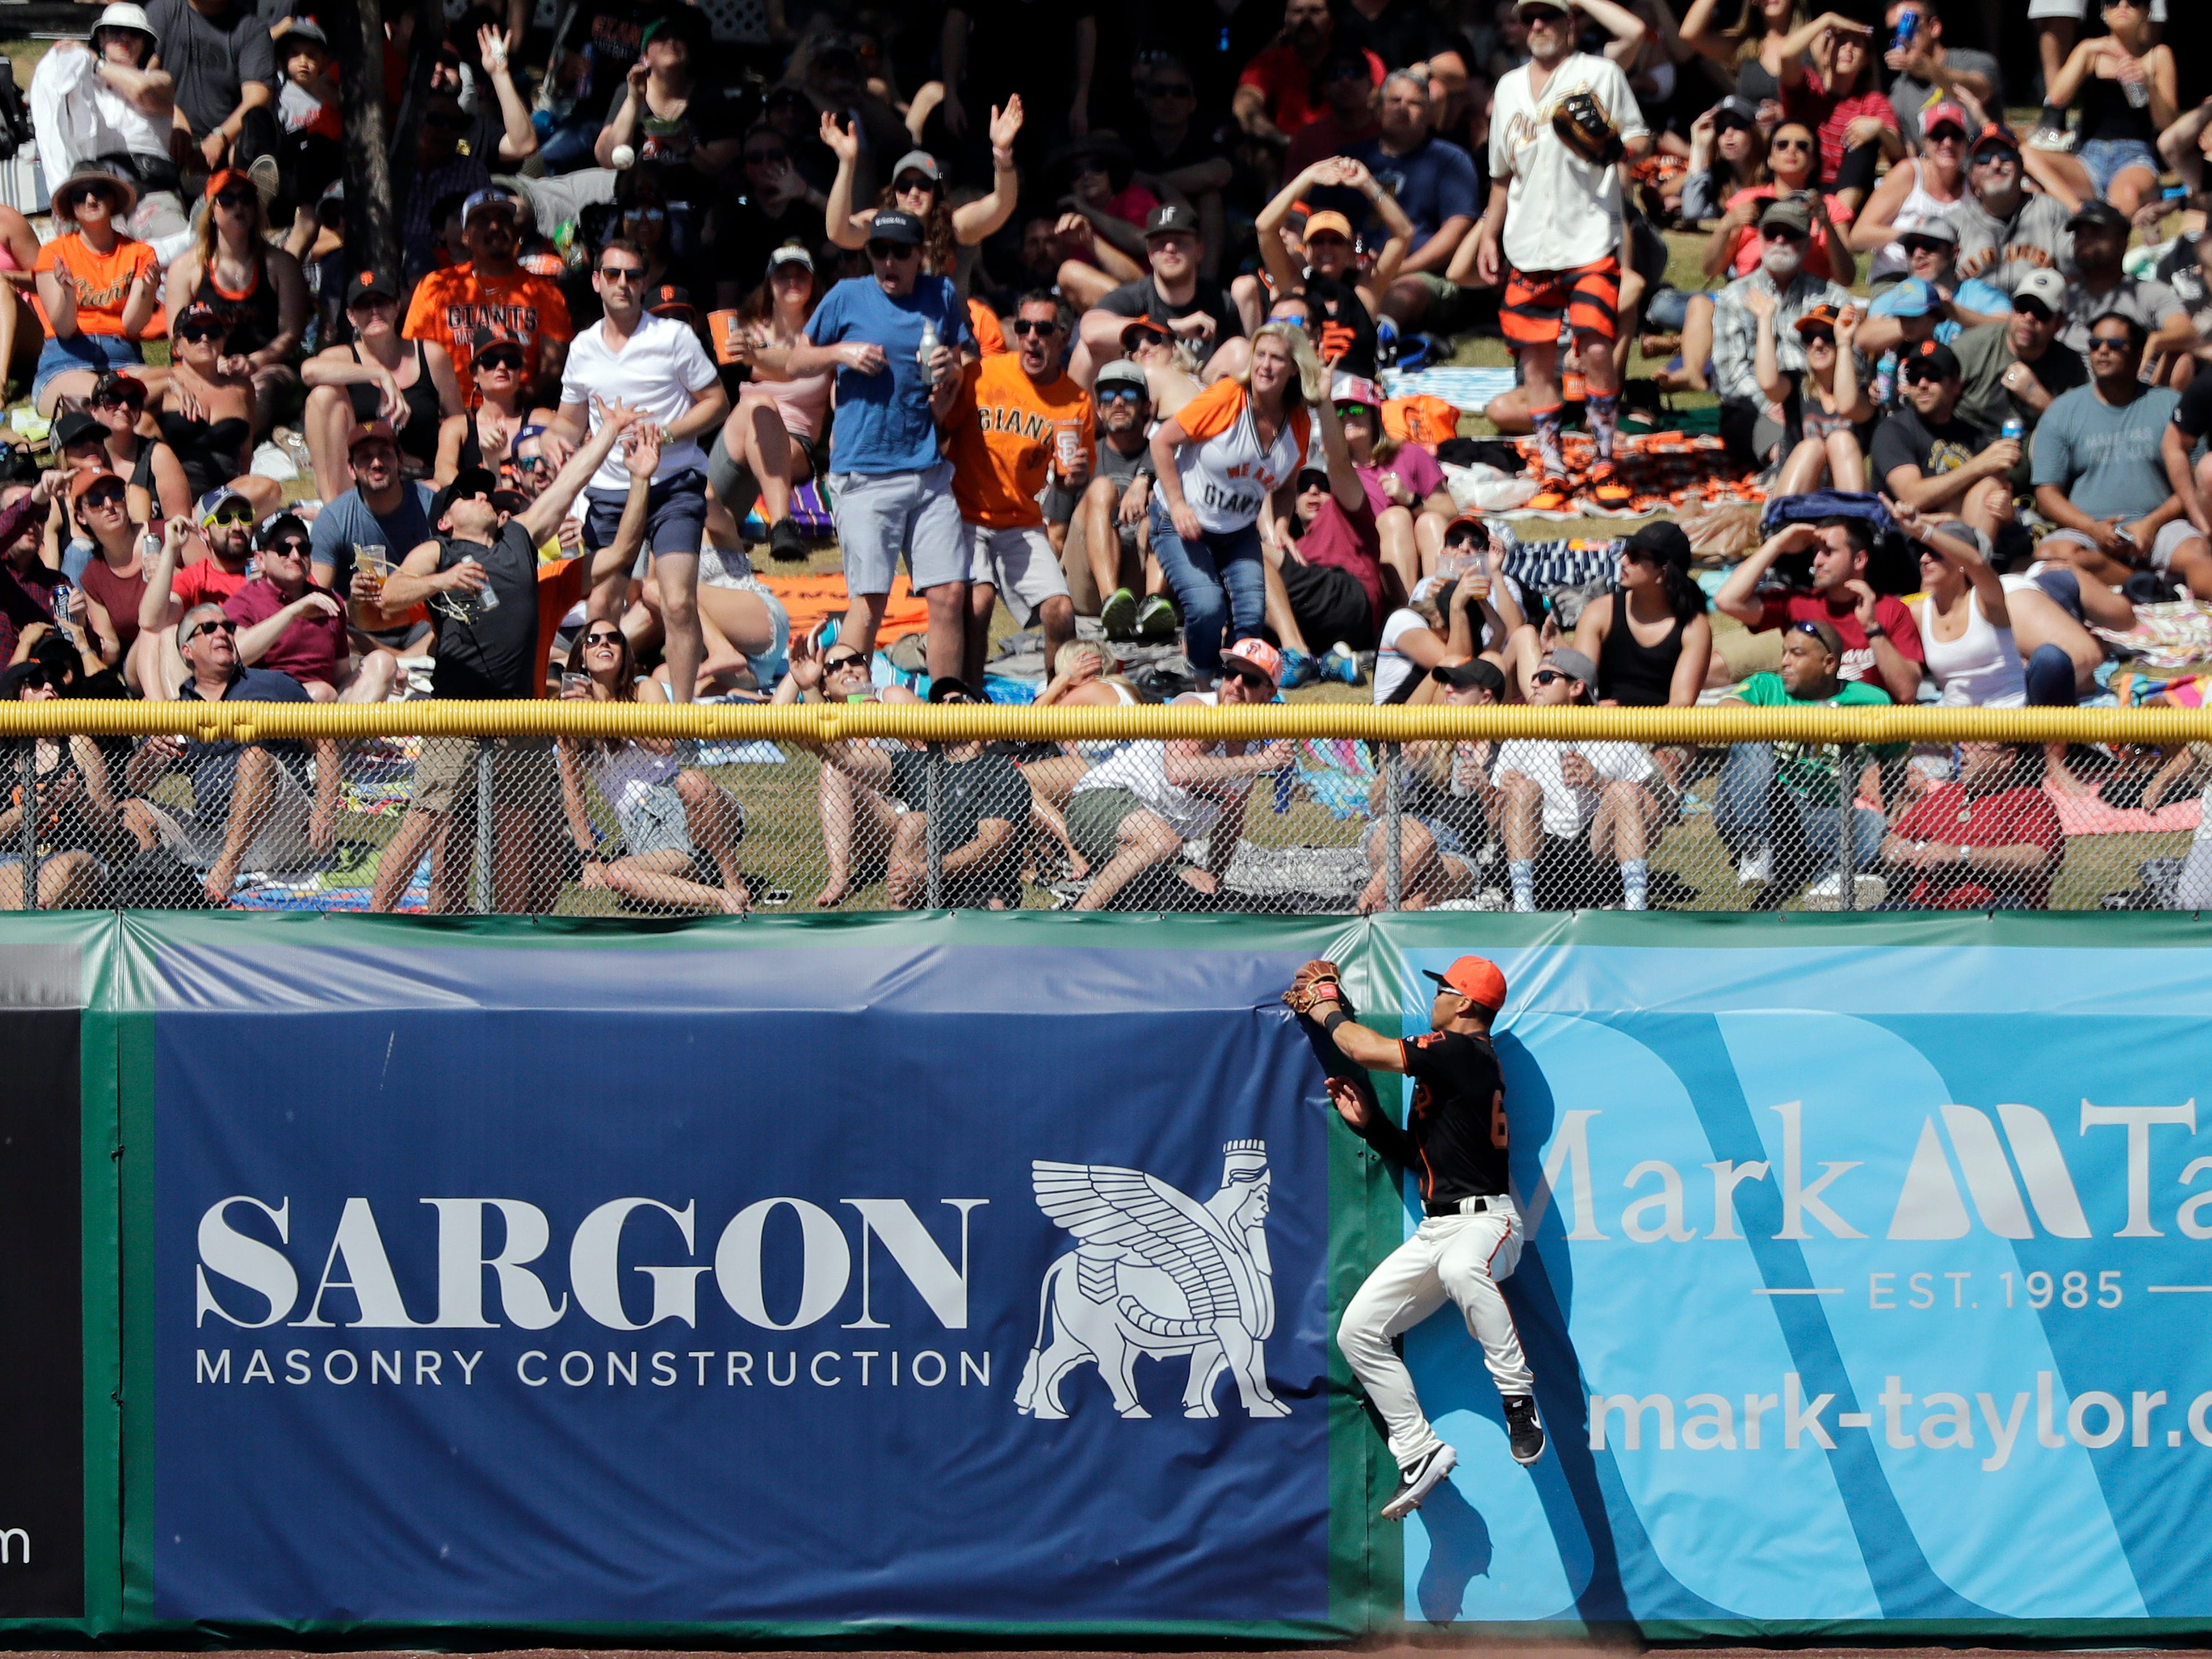 San Francisco Giants left fielder Connor Joe leaps at the wall as fans reach for the home run of Arizona Diamondbacks' David Peralta during the third inning of a spring training baseball game Saturday, March 23, 2019, in Scottsdale, Ariz.